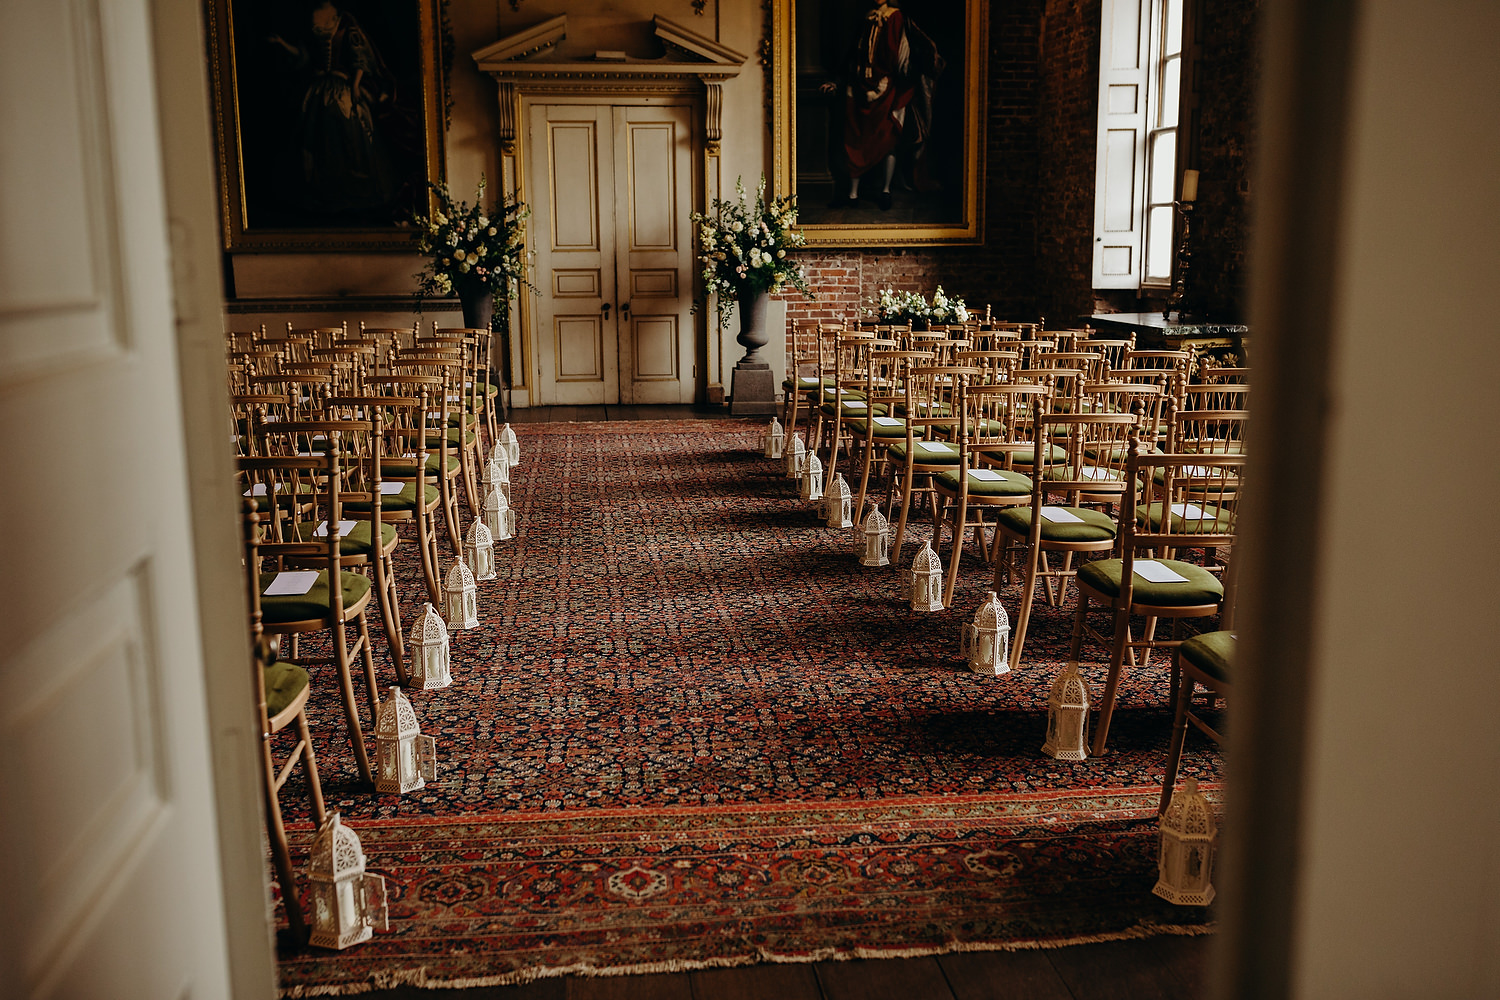 Indoor ceremony room at St Giles House